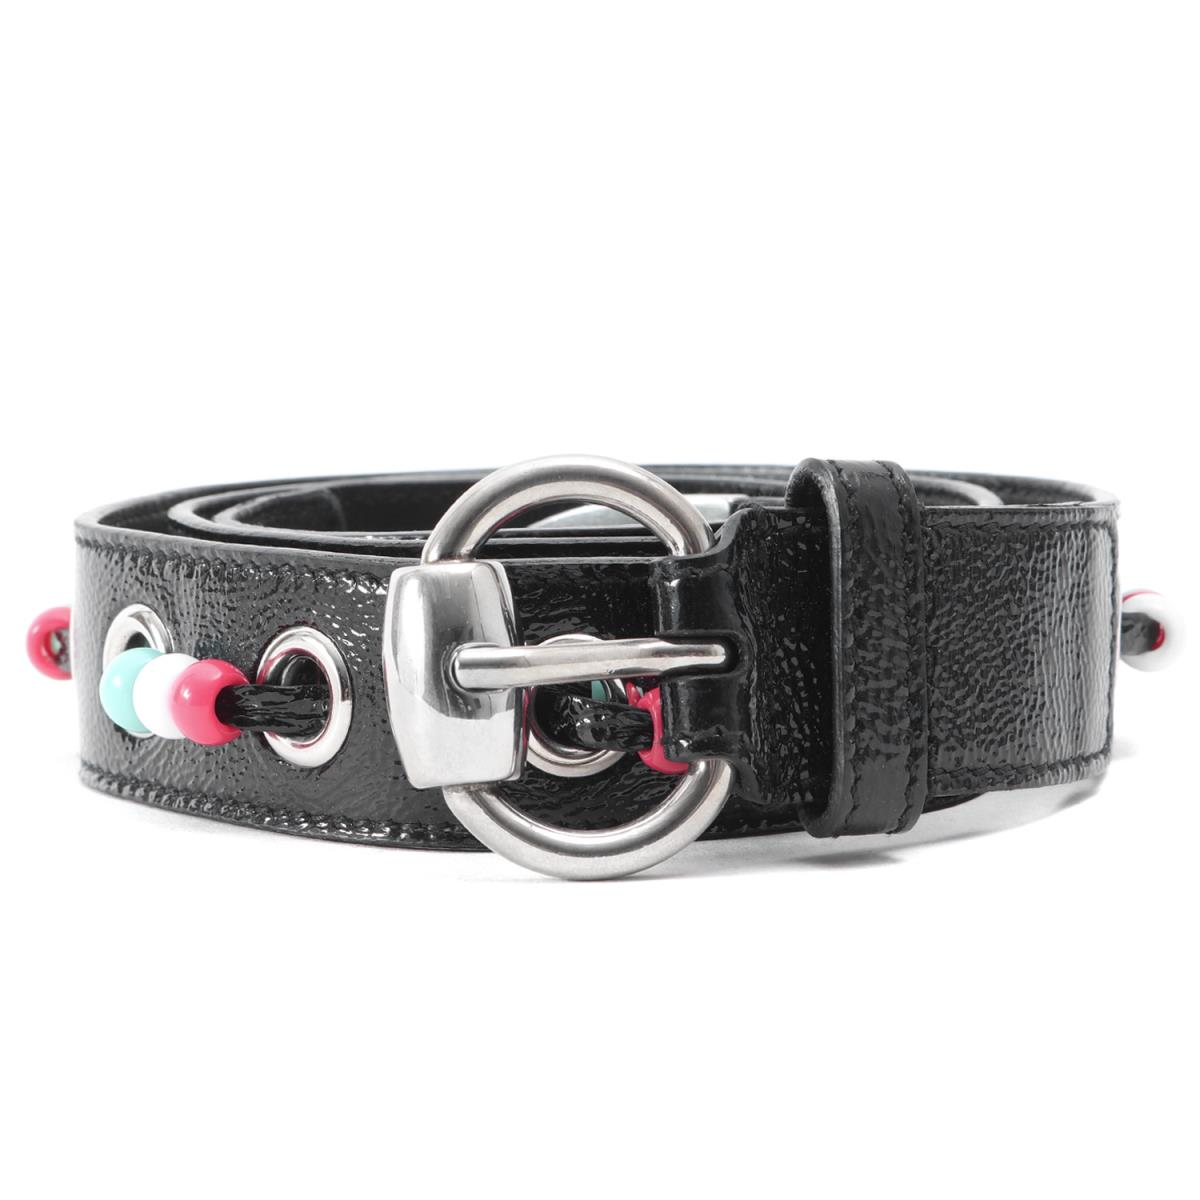 82d5aec7b03 Black 90-36 made in patent leather narrow belt Italy with GUCCI (Gucci)  beads